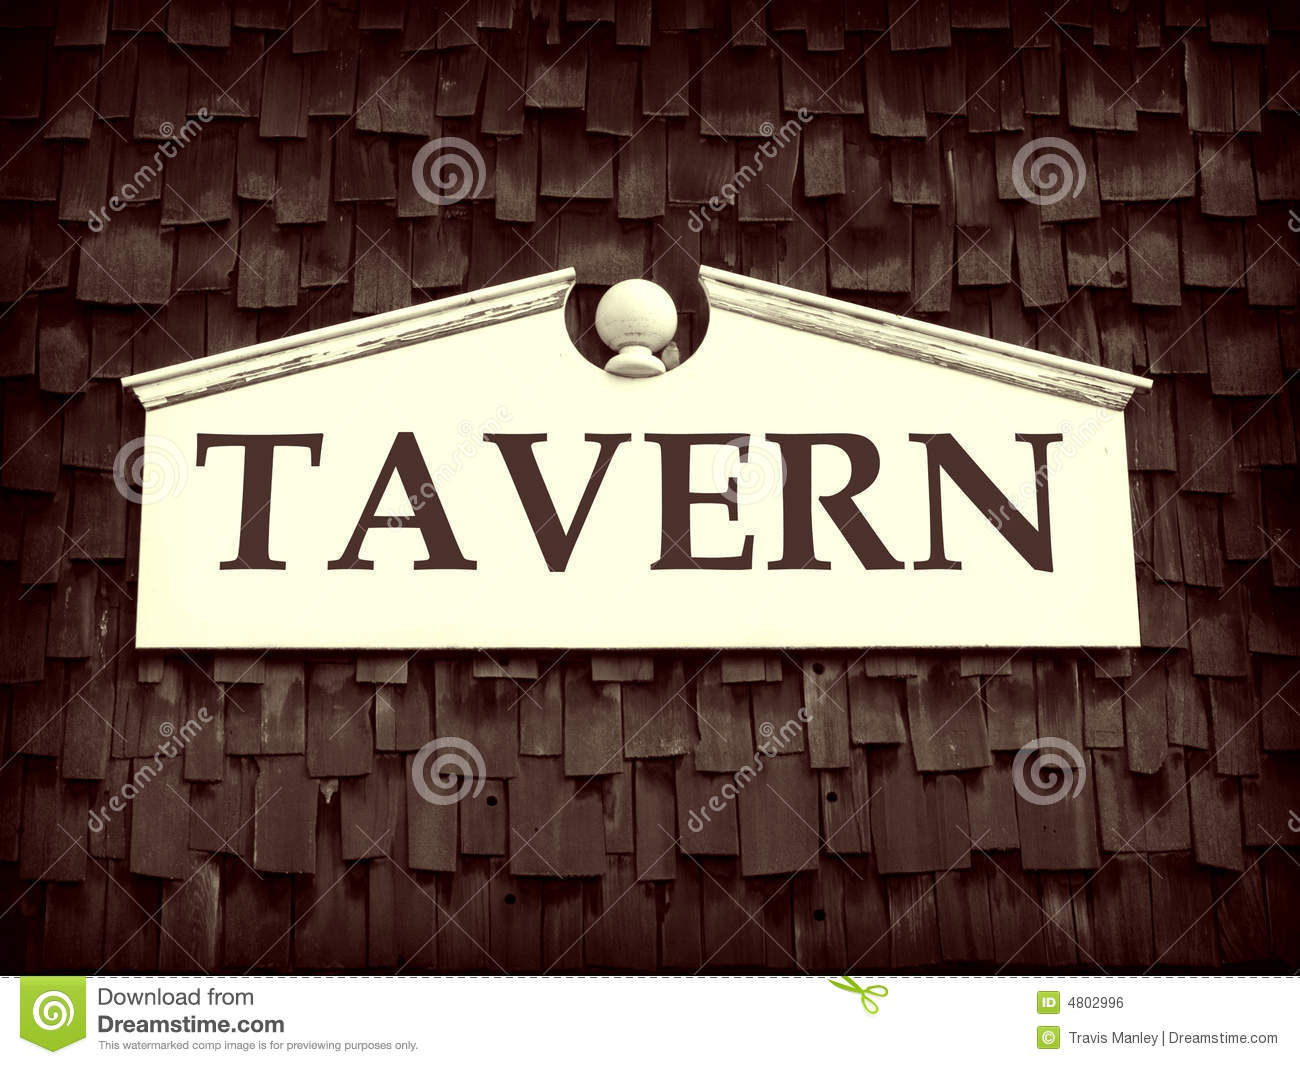 Tavern Sign Royalty Free Stock Image  Image 4802996. Heart Condition Signs. Reserved Table Signs. Exercise Signs. Thickened Skin Signs. Explanation Signs. Quitting Smoking Signs. Lotus Signs Of Stroke. Step Signs